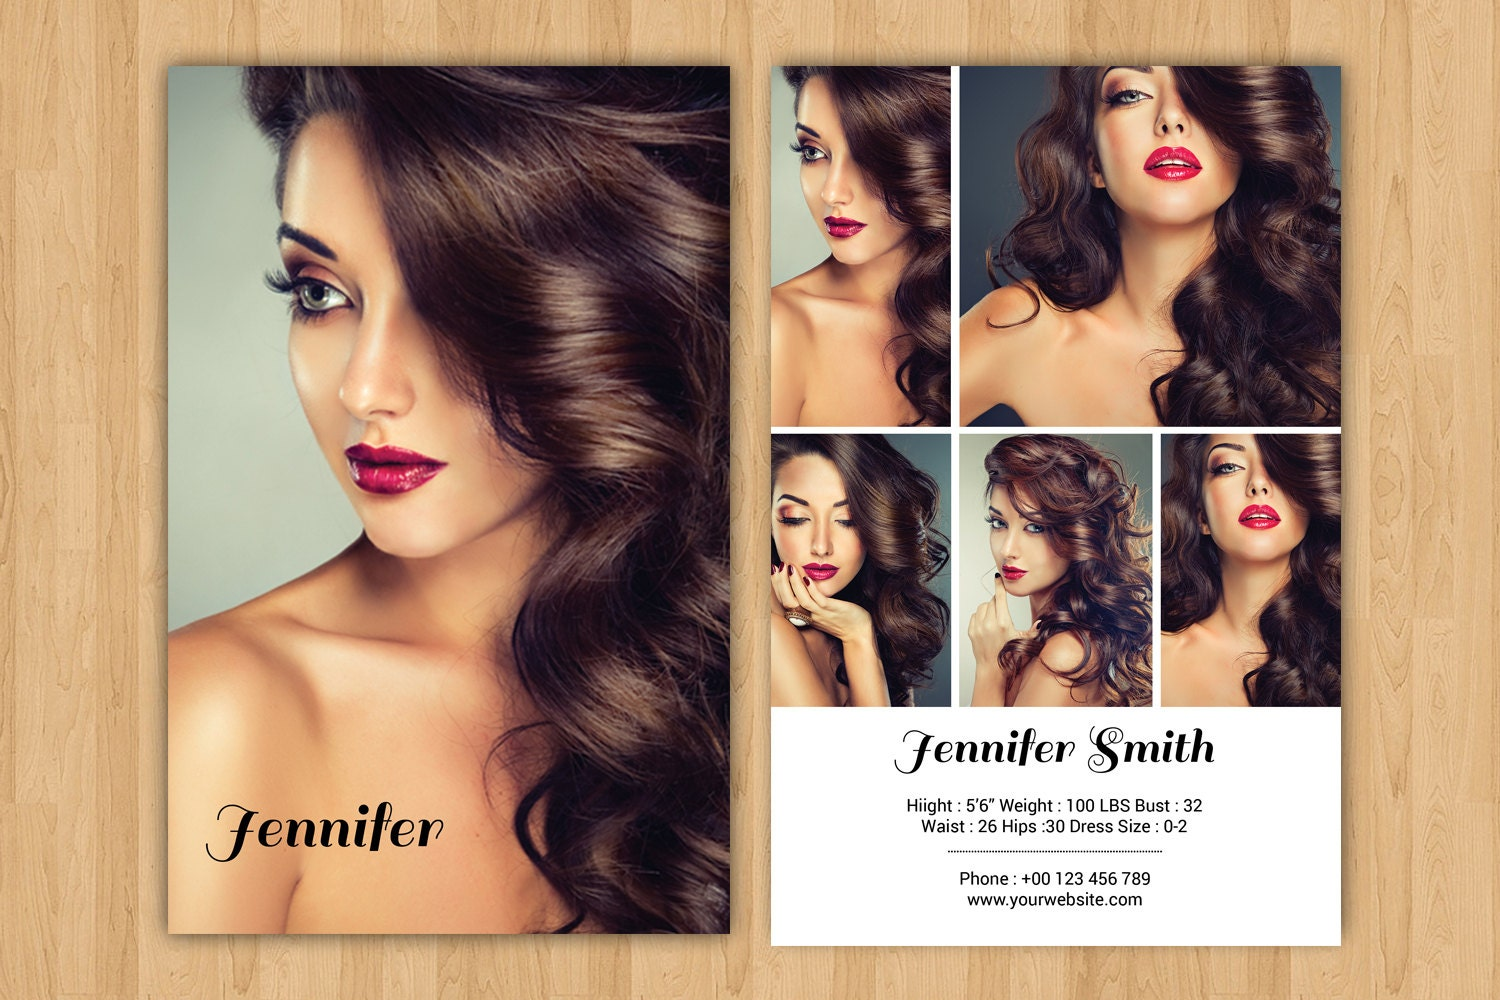 Modeling Comp Card Template  Model Comp Card Photoshop ,Elements & MS Word  Template  Instant Download  mc-21 With Regard To Comp Card Template Psd